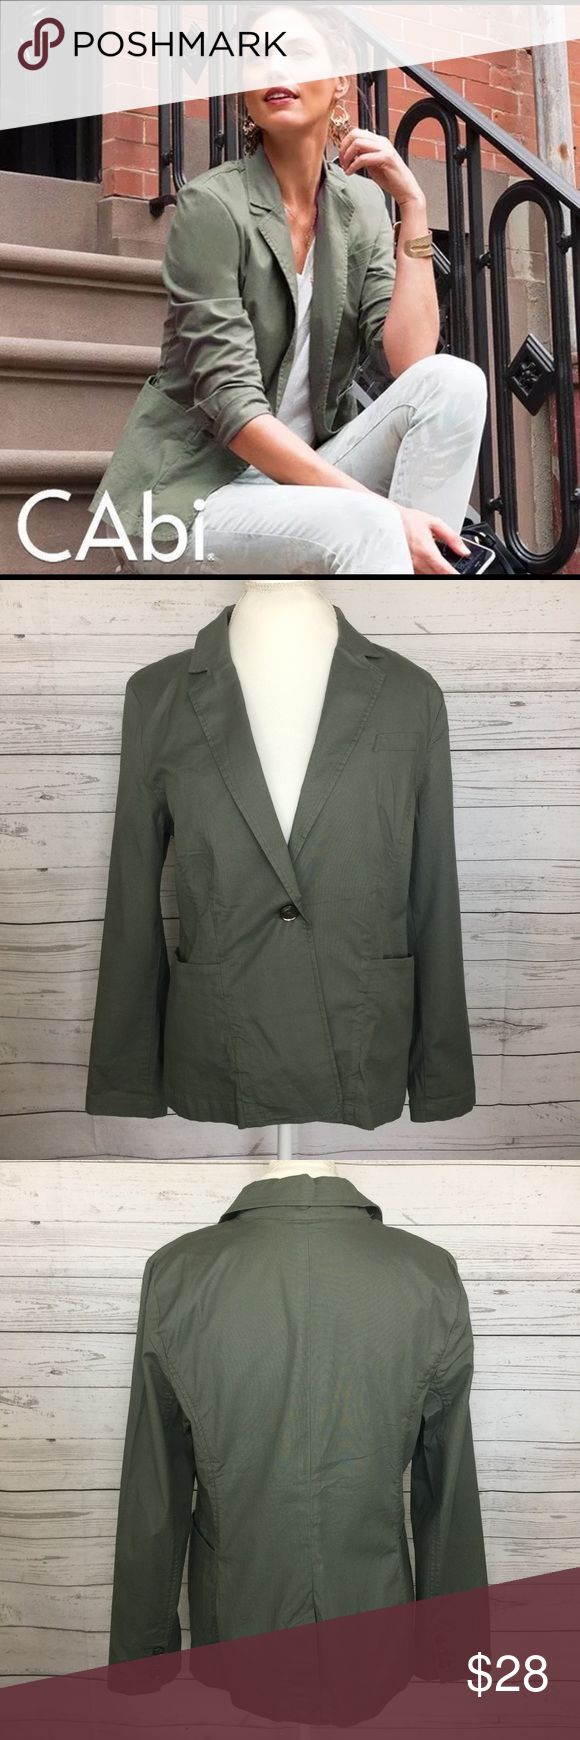 Cabi Women's Olive Green Blazer Military Style L CAbi Olive Green Blazer Jacket style 207 Fall Military Style Coat One Button GUC  Condition - Gently Used  No Stains  No Rips  No Holes  No fading  Please see all photos prior to purchasing  Details - Style/Model/Type: Womens Blazer Jacket Occasion: Casual, Fall US Size: Large Neck Line: Single Button Color: Olive Green Pattern: Solid Materials: 97%cotton 3% spandex  Wash Instructions: See Photos Pockets: 2 Front Pockets  Measurements…